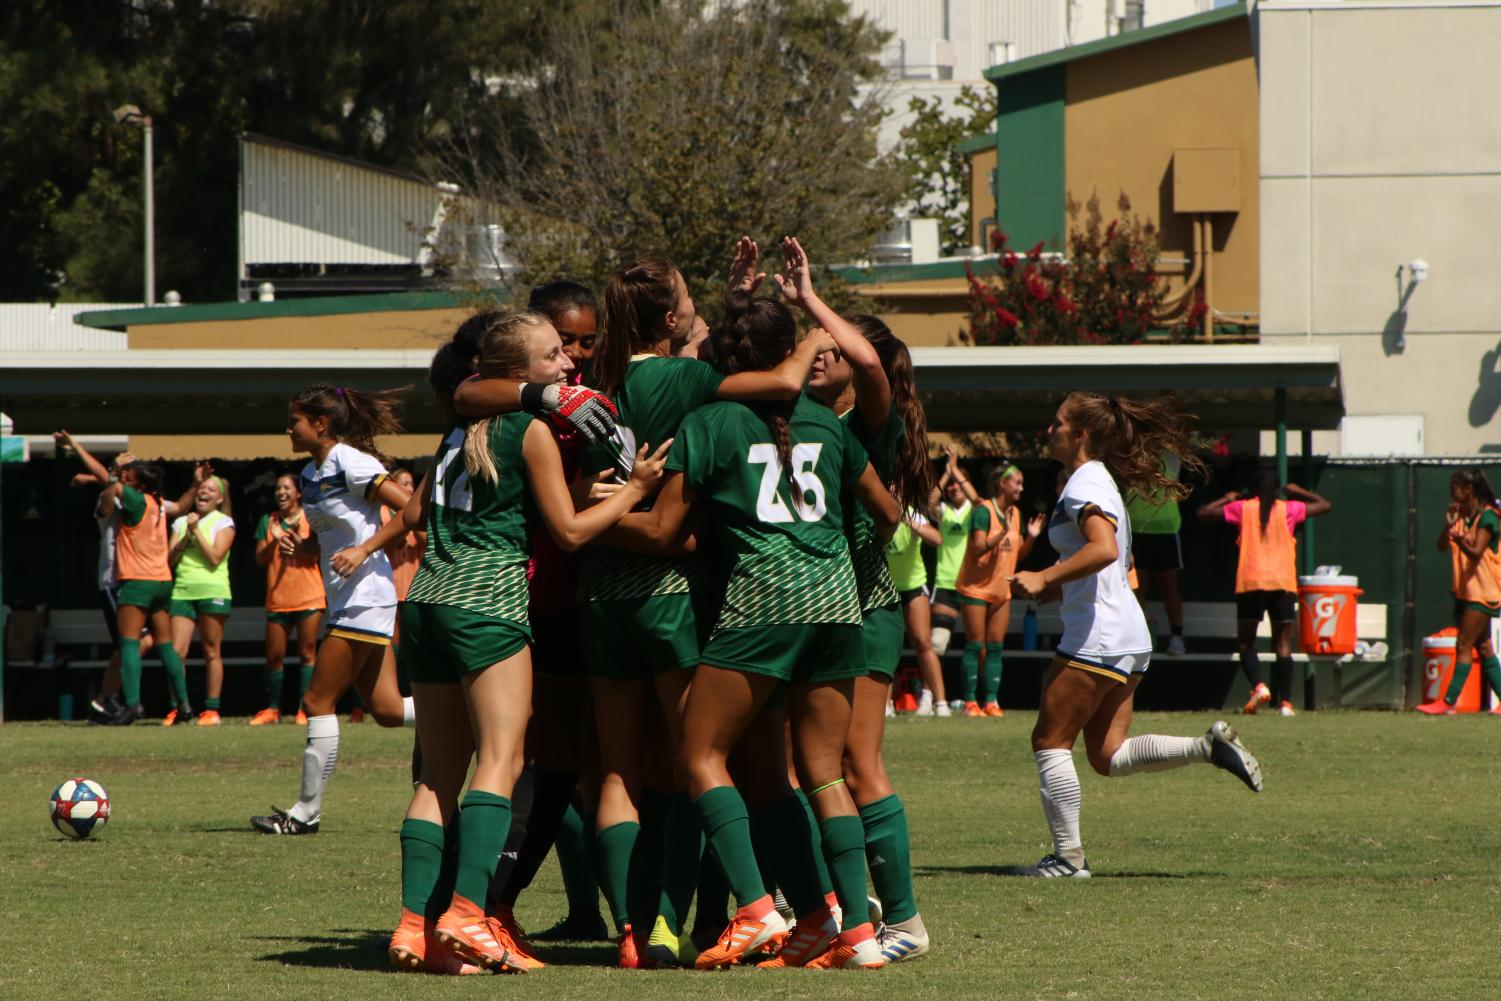 The Sac State women's soccer team celebrate the tying goal from junior forward Kylee Kim-Bustillos with about two minutes left  in regulation against Cal Baptist on Sunday, Sept. 8 at Hornet Field. The Hornets and Lancers played a 2-2 draw.